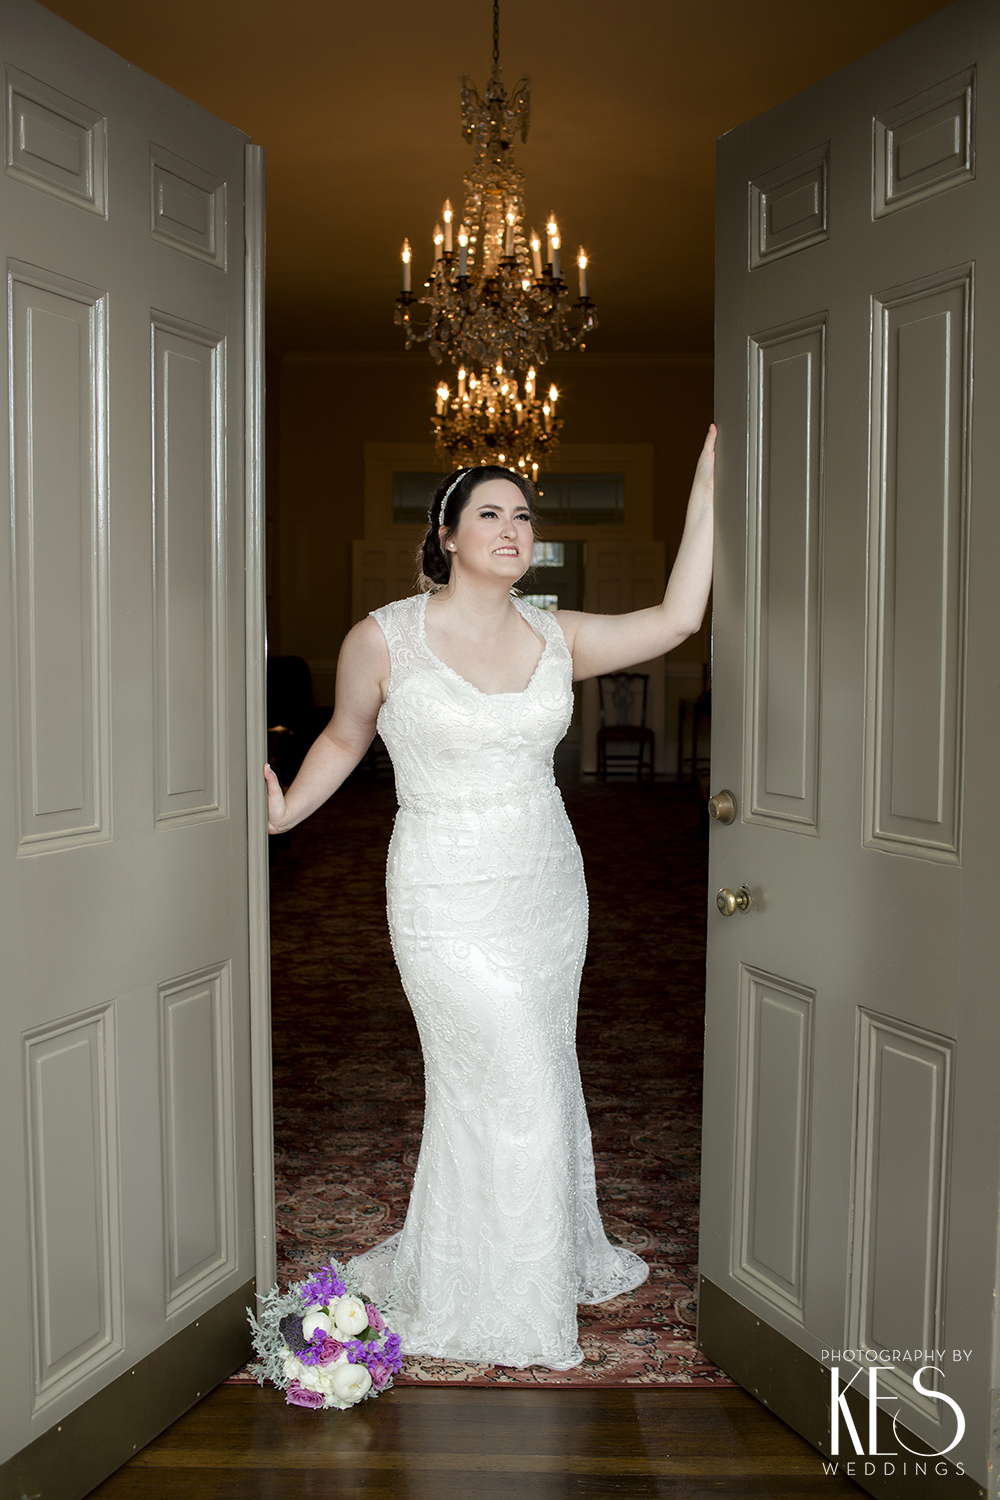 Trapnall_Hall_Bridals_KES_Weddings_10.JPG